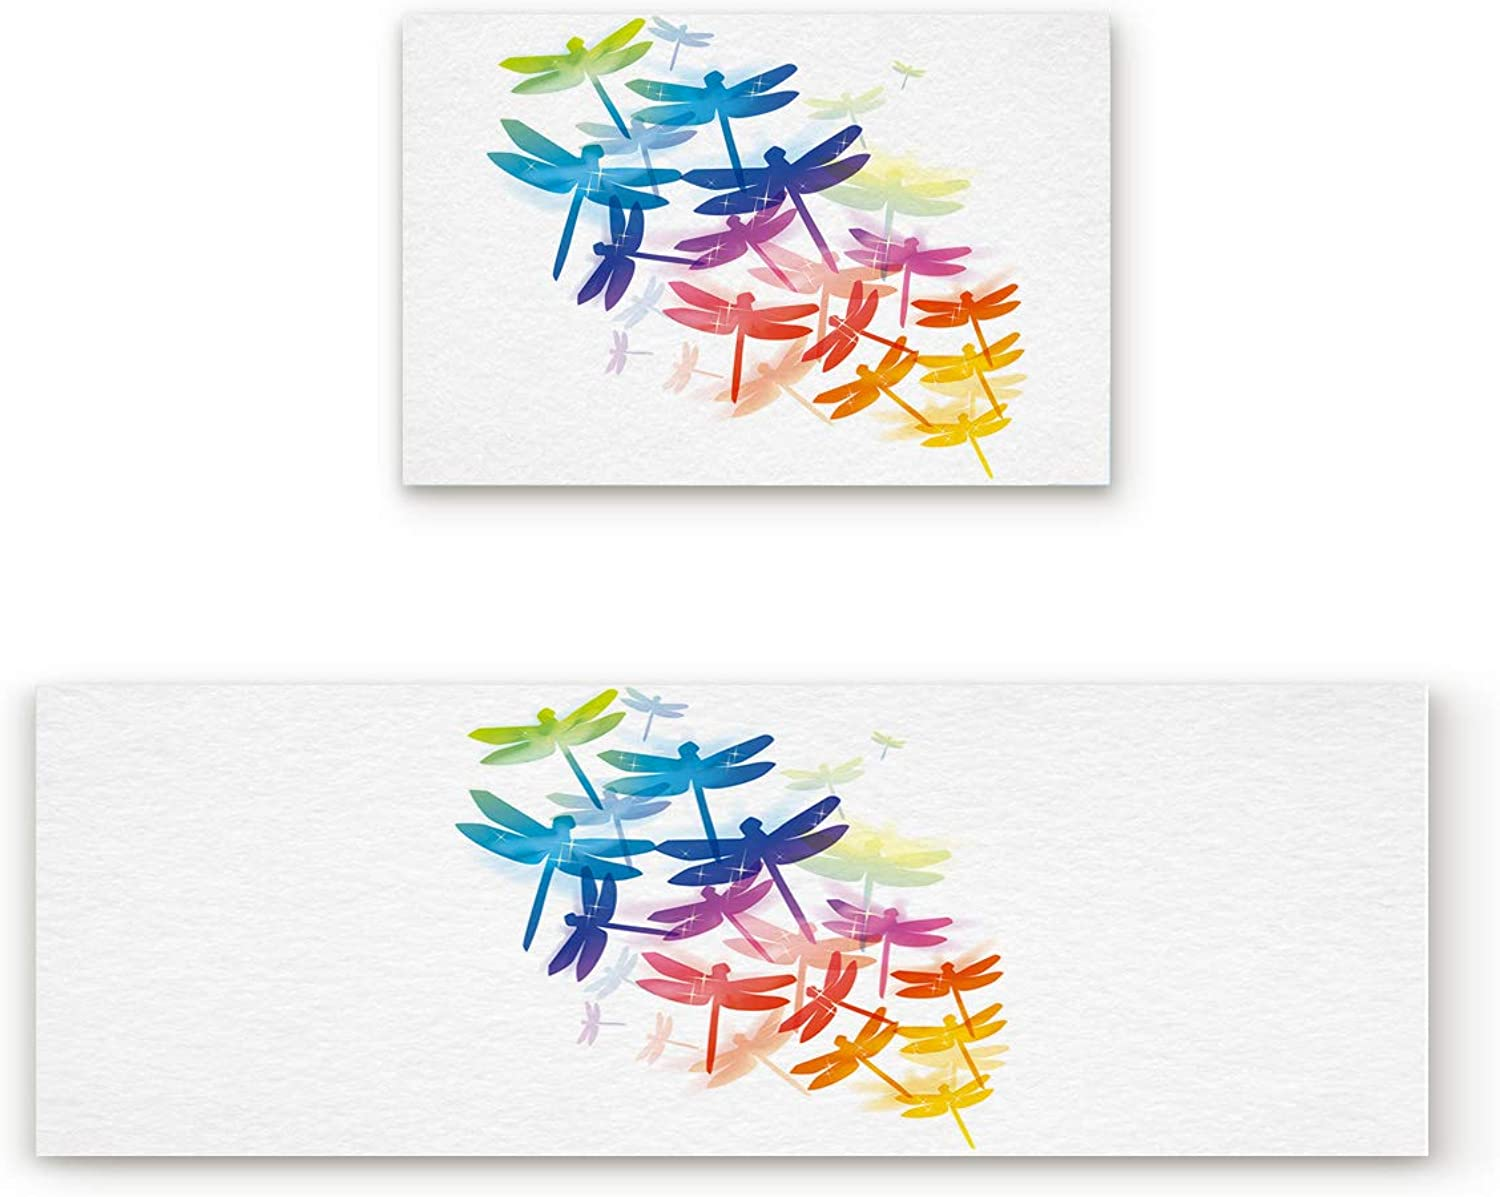 Aomike 2 Piece Non-Slip Kitchen Mat Rubber Backing Doormat colorful Cool Dragonfly Runner Rug Set, Hallway Living Room Balcony Bathroom Carpet Sets (19.7  x 31.5 +19.7  x 47.2 )